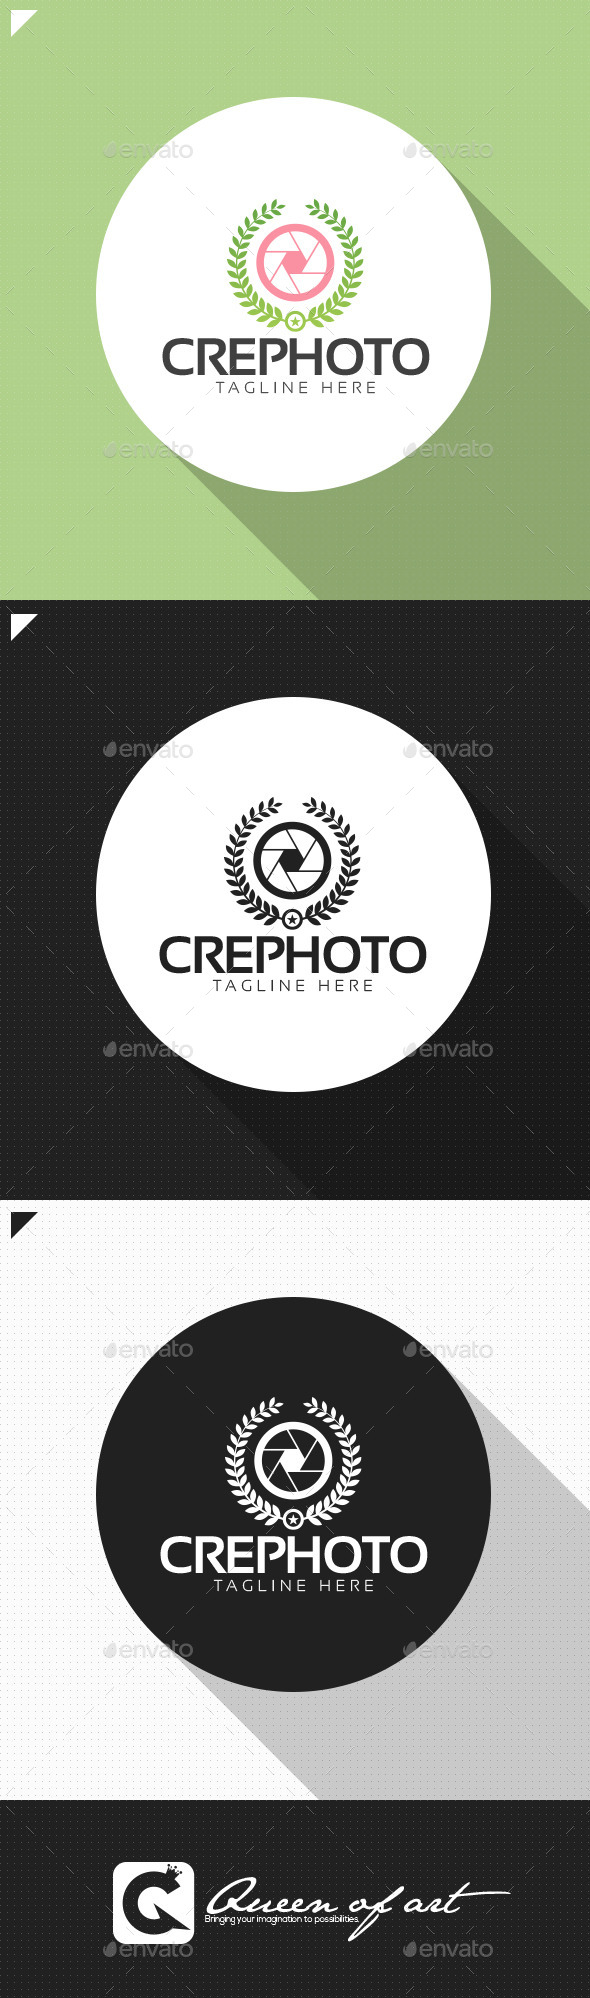 Crephoto Logo - Objects Logo Templates